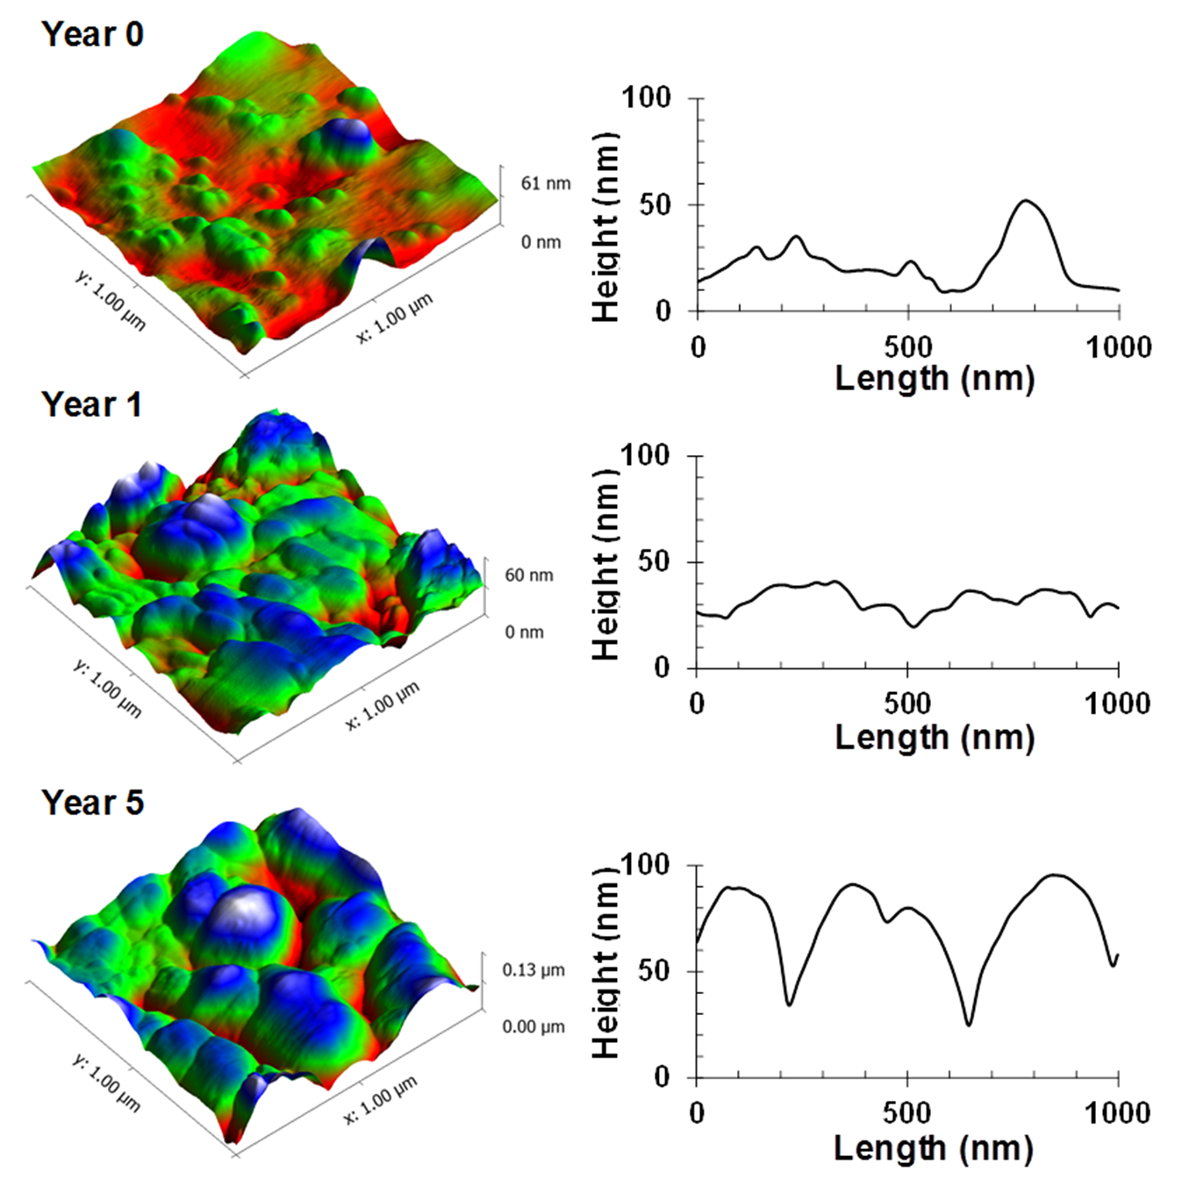 The Evolution of Silica Nanoparticle-polyester Coatings on